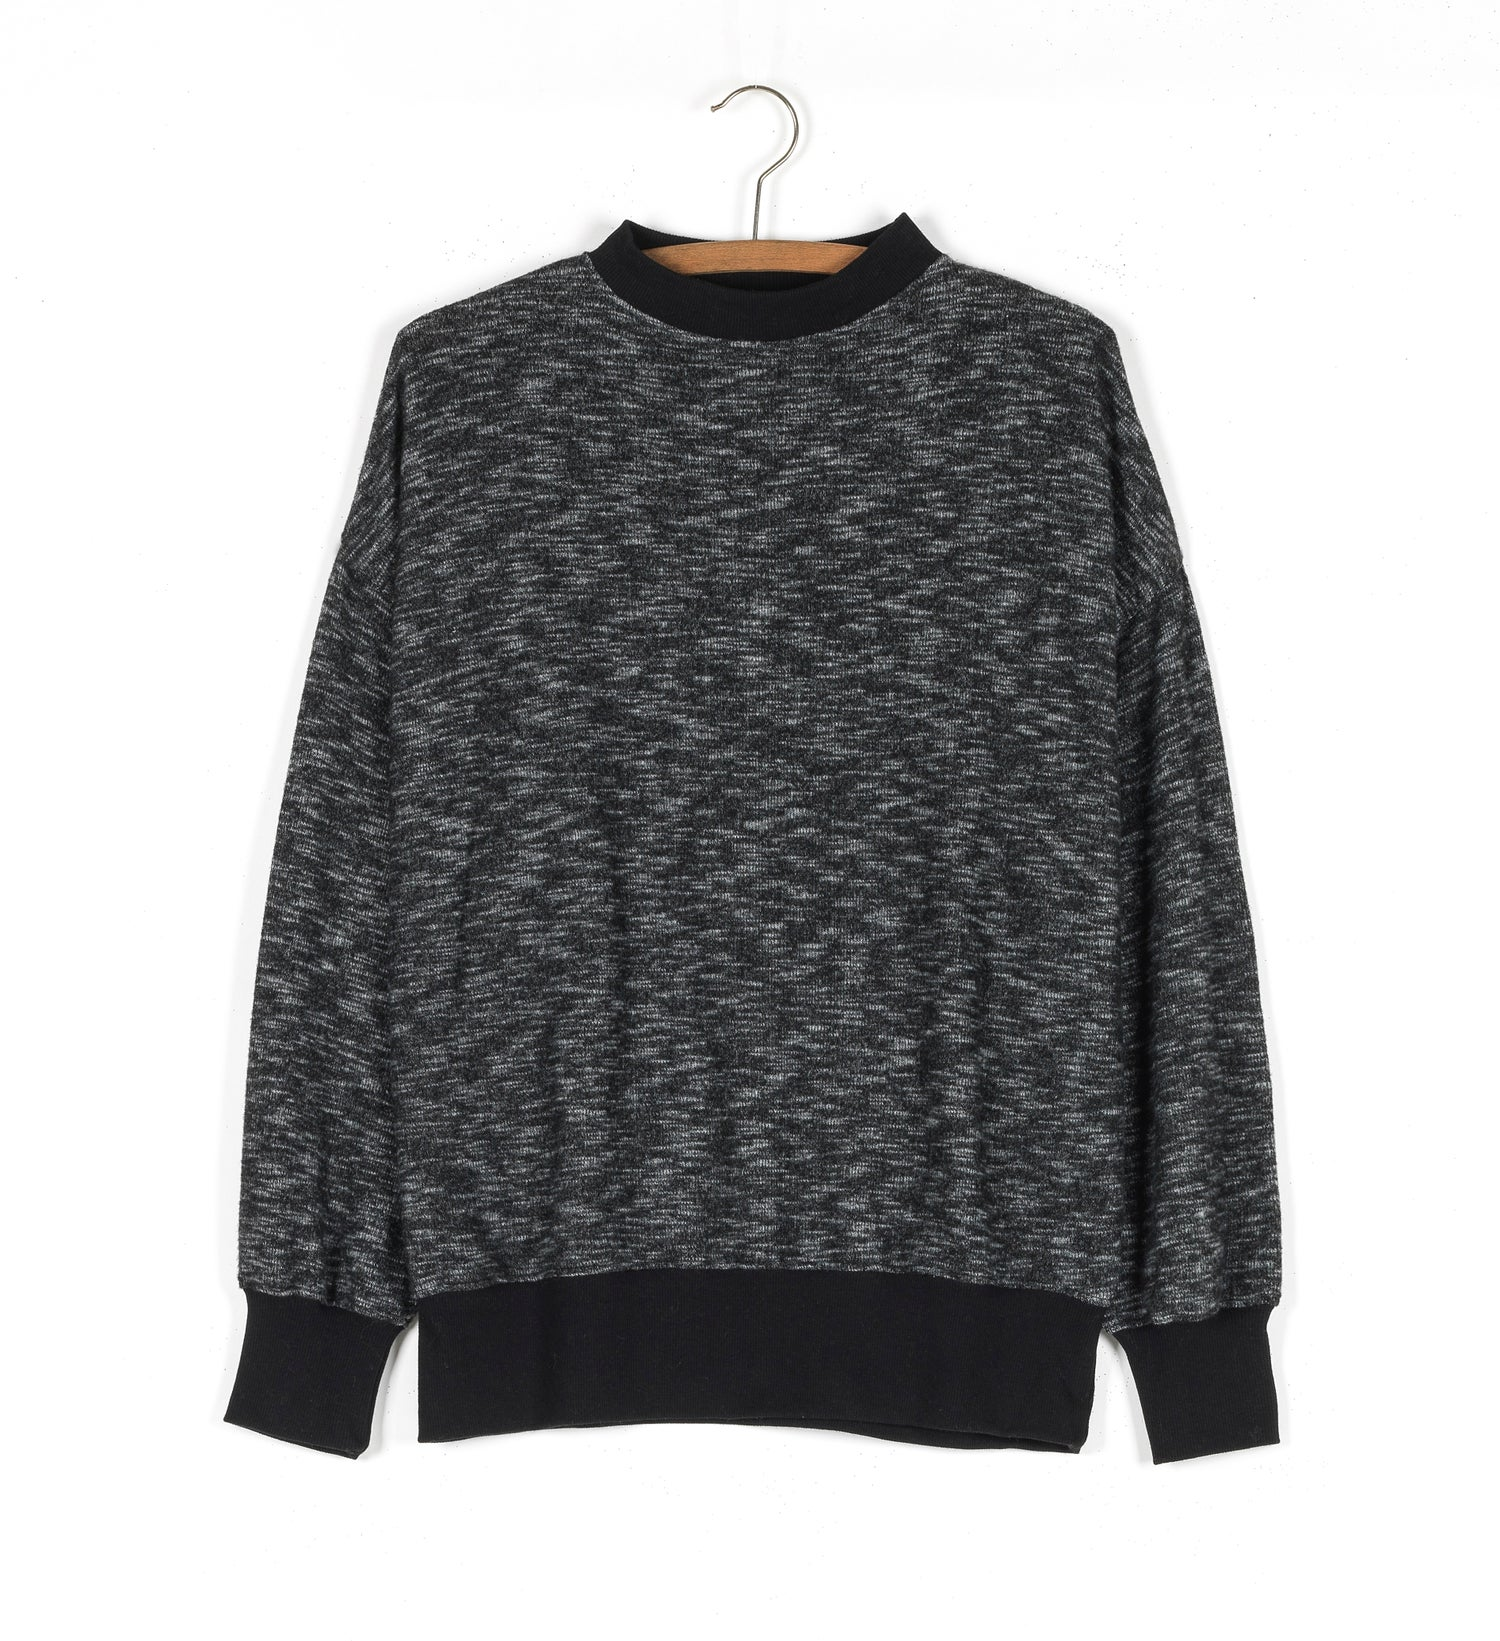 Image of Sweat chiné ARCHIBALD 85€ -50%